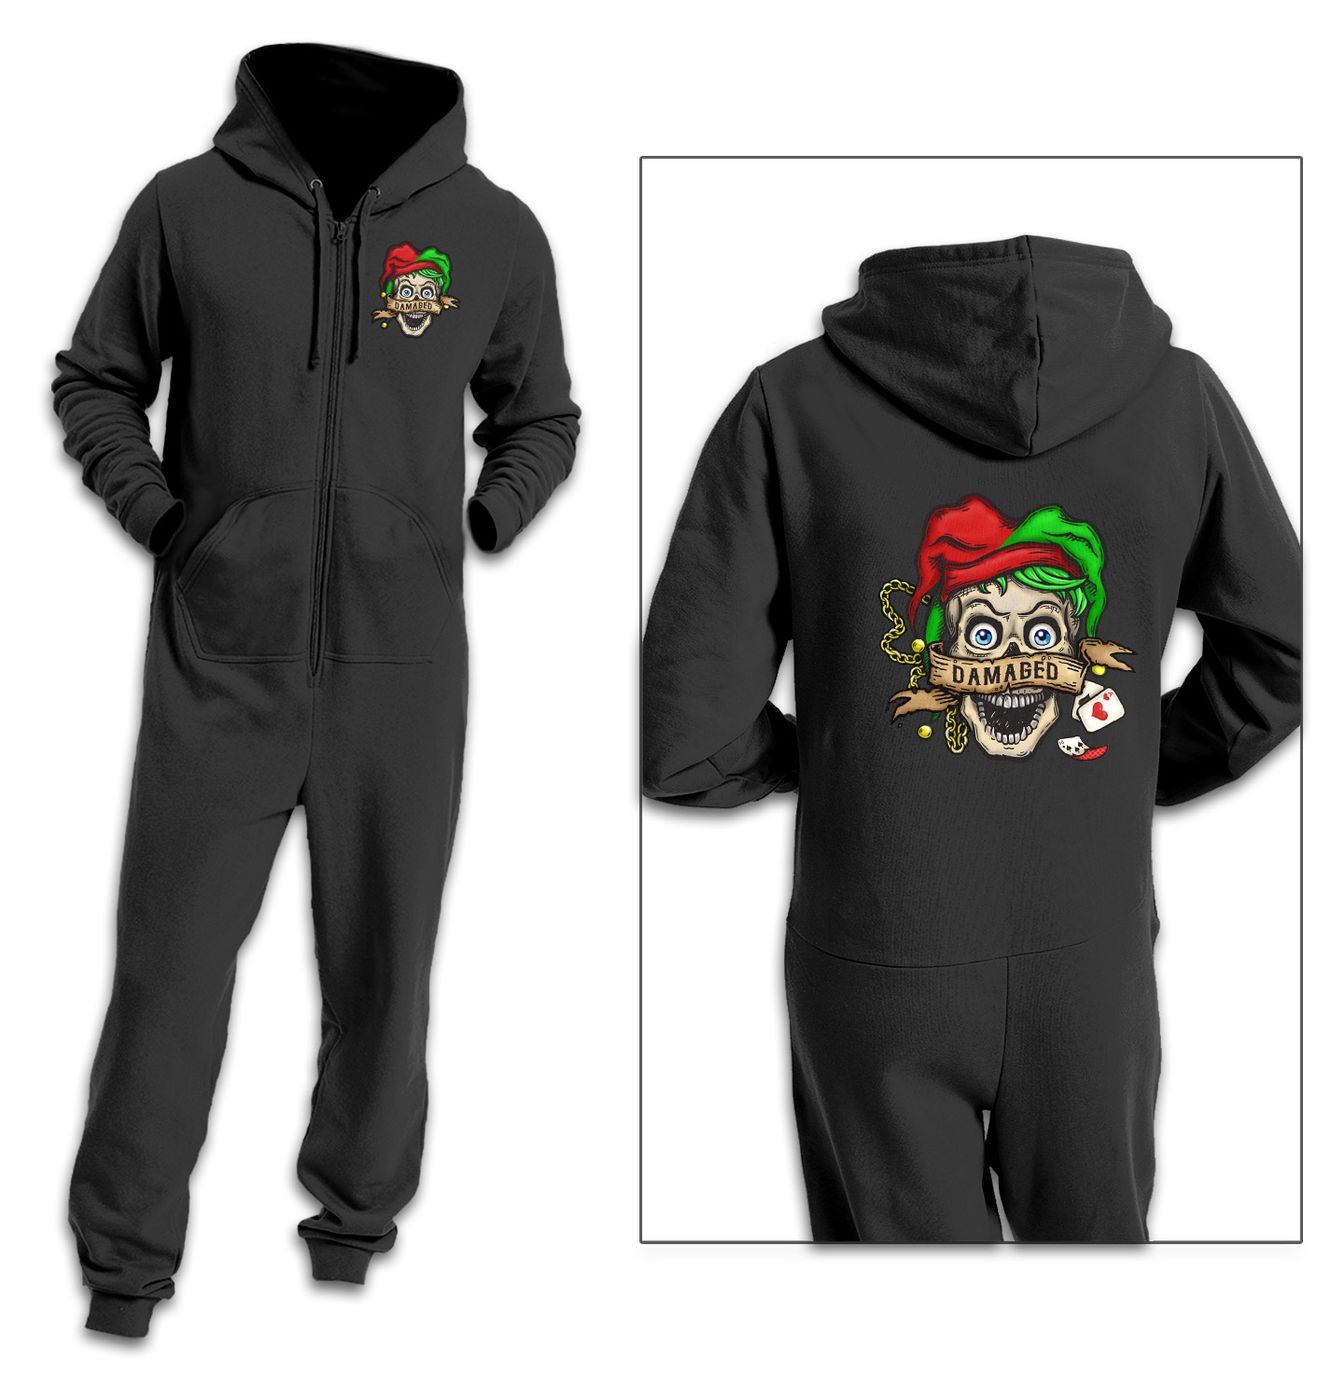 Damaged Tattoo adult onesie by Something Geeky